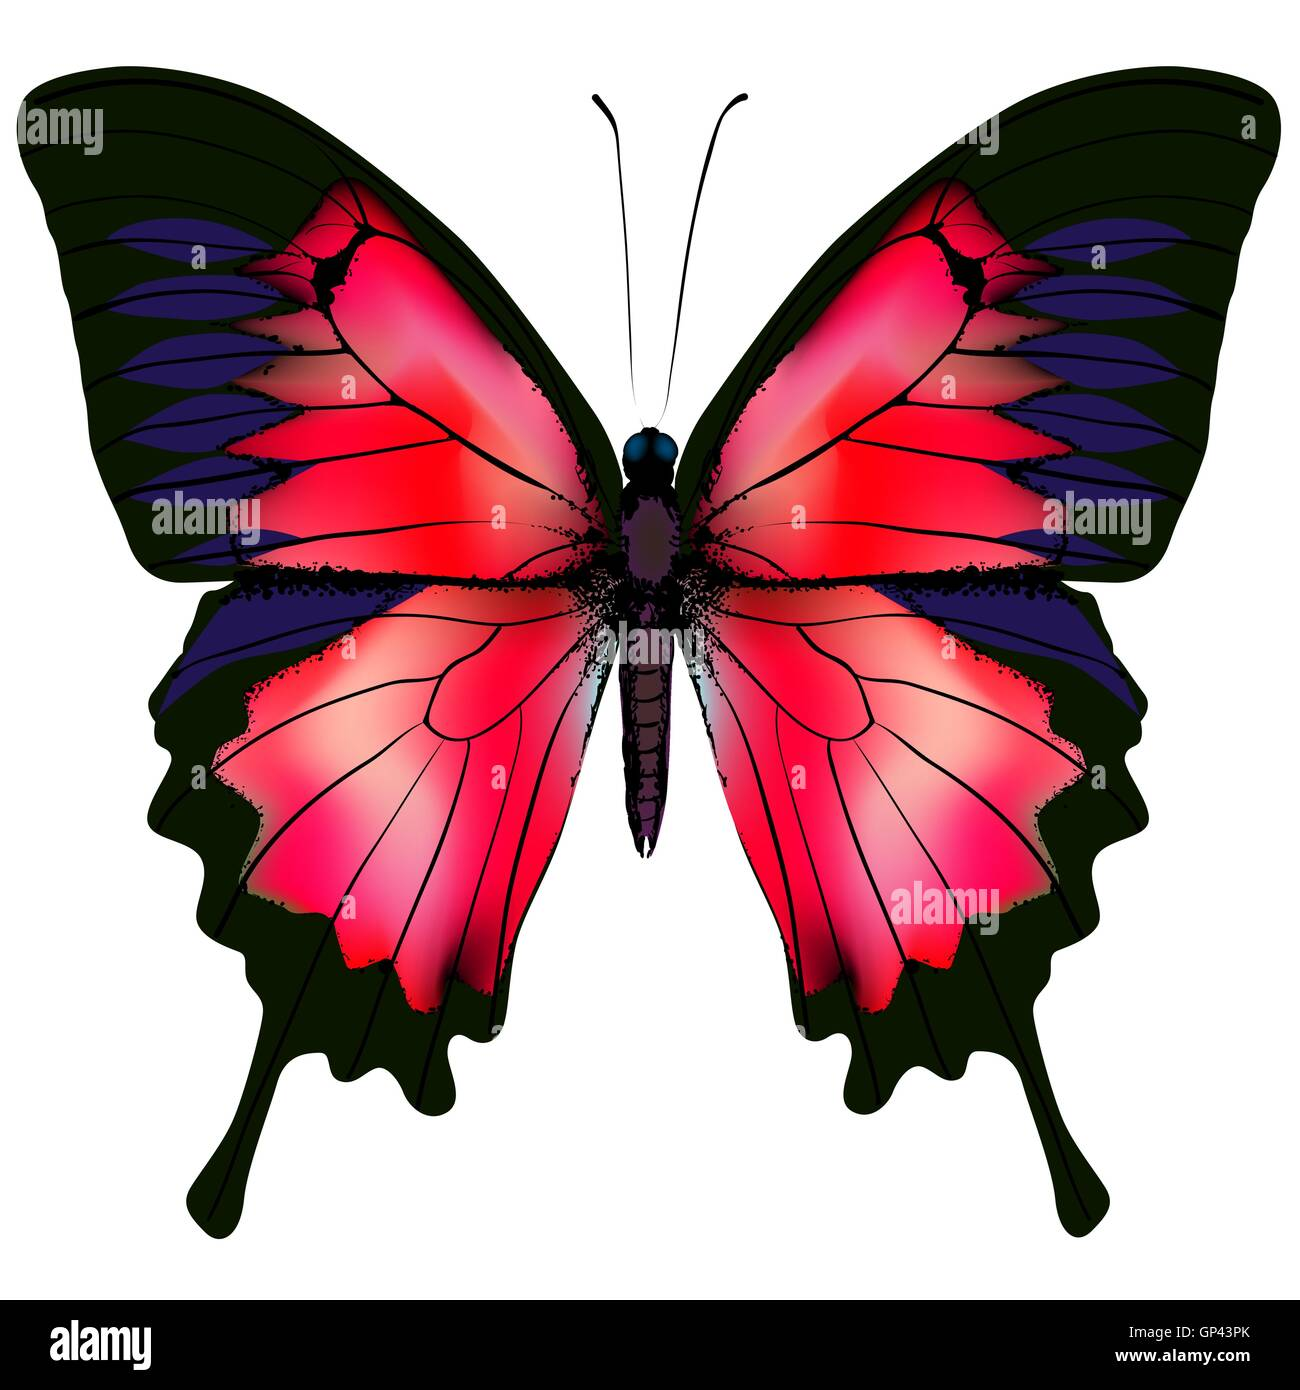 Butterfly. Vector illustration - Stock Image